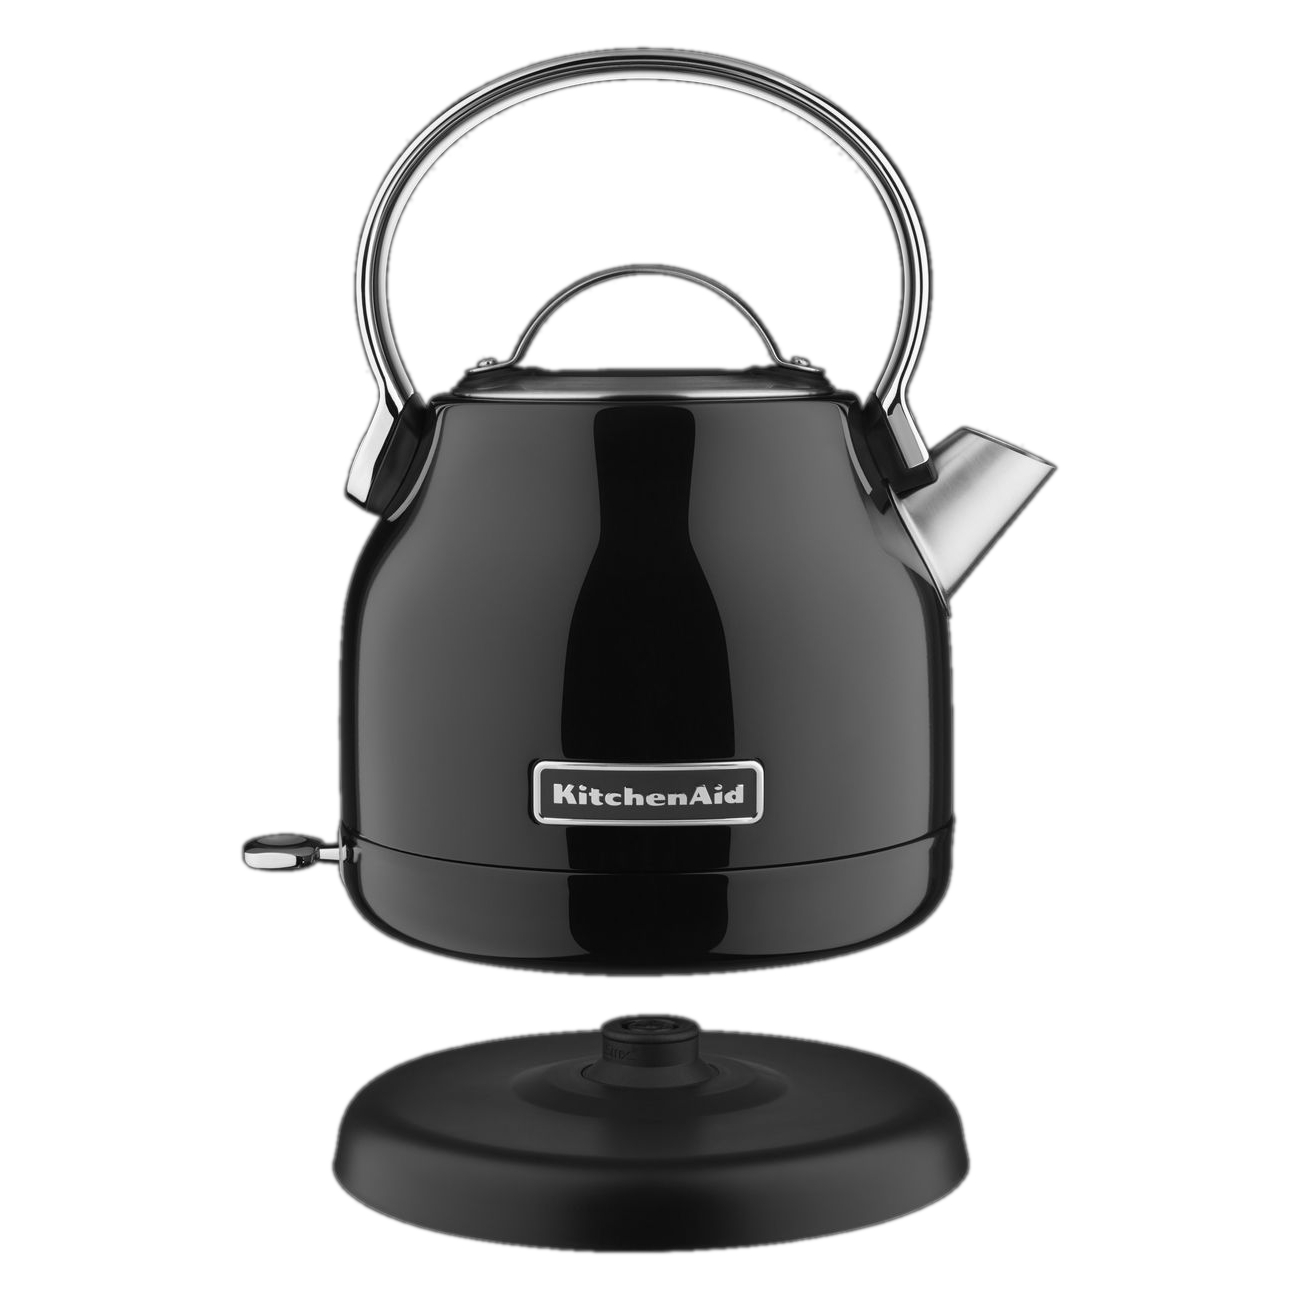 KitchenAid Onyx Black Stainless Steel 1.25 Liter Electric Kettle